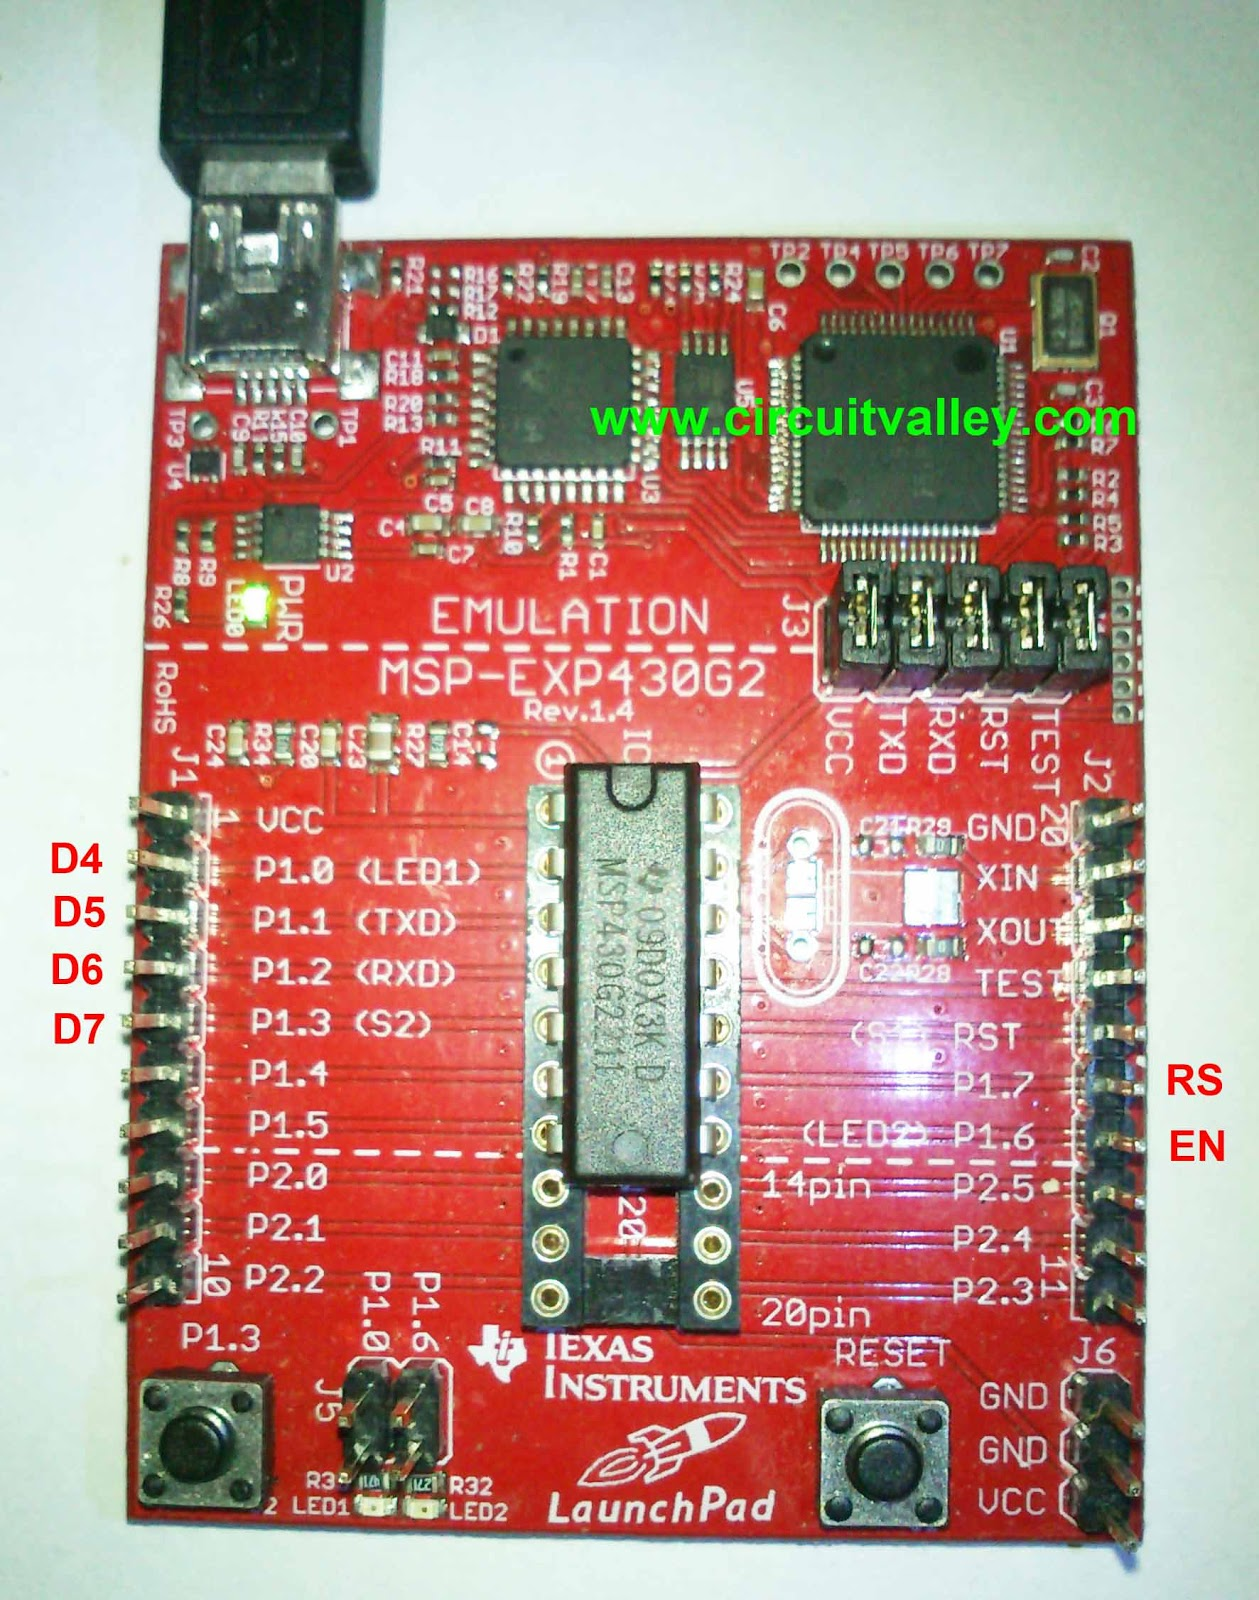 MSP430+interfacing+to+16x2+char+lcd+%25283%2529 embedded engineering 16x2 char lcd with ti msp430 launch pad Basic Electrical Wiring Diagrams at crackthecode.co